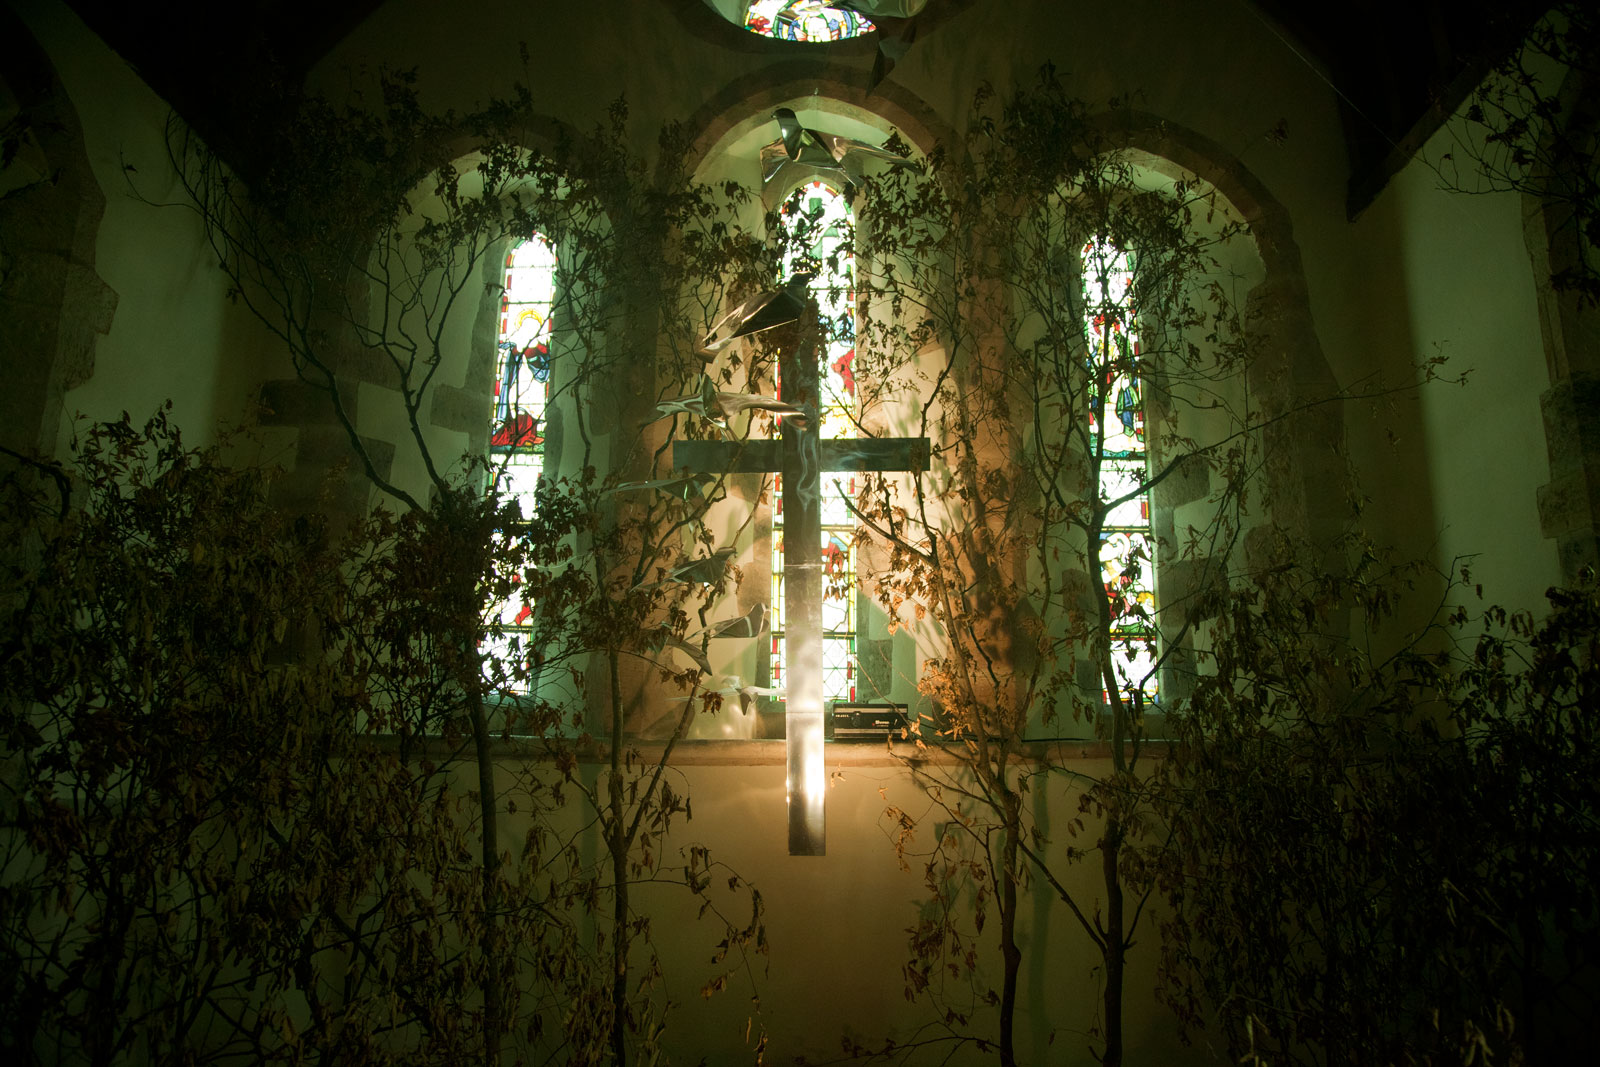 Churches, Weeds, Wildflowers and Wonder